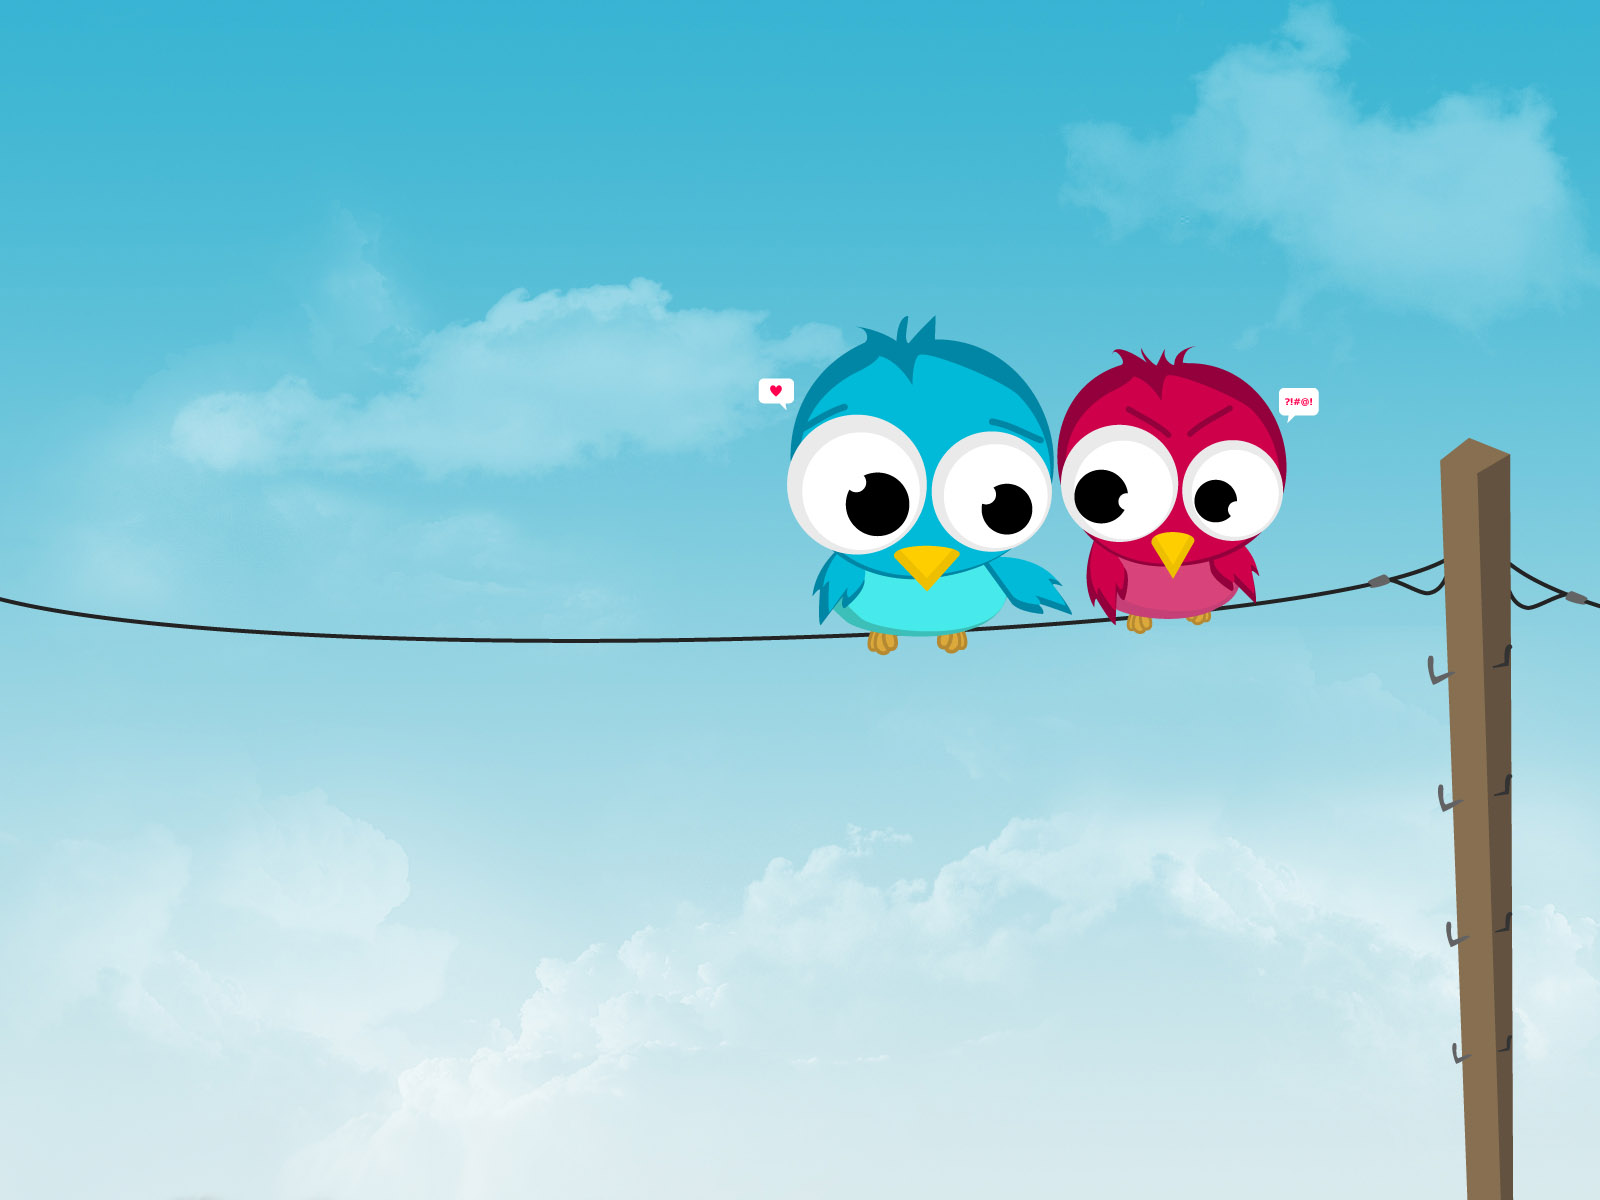 Collection of Cute Pc Backgrounds on HDWallpapers